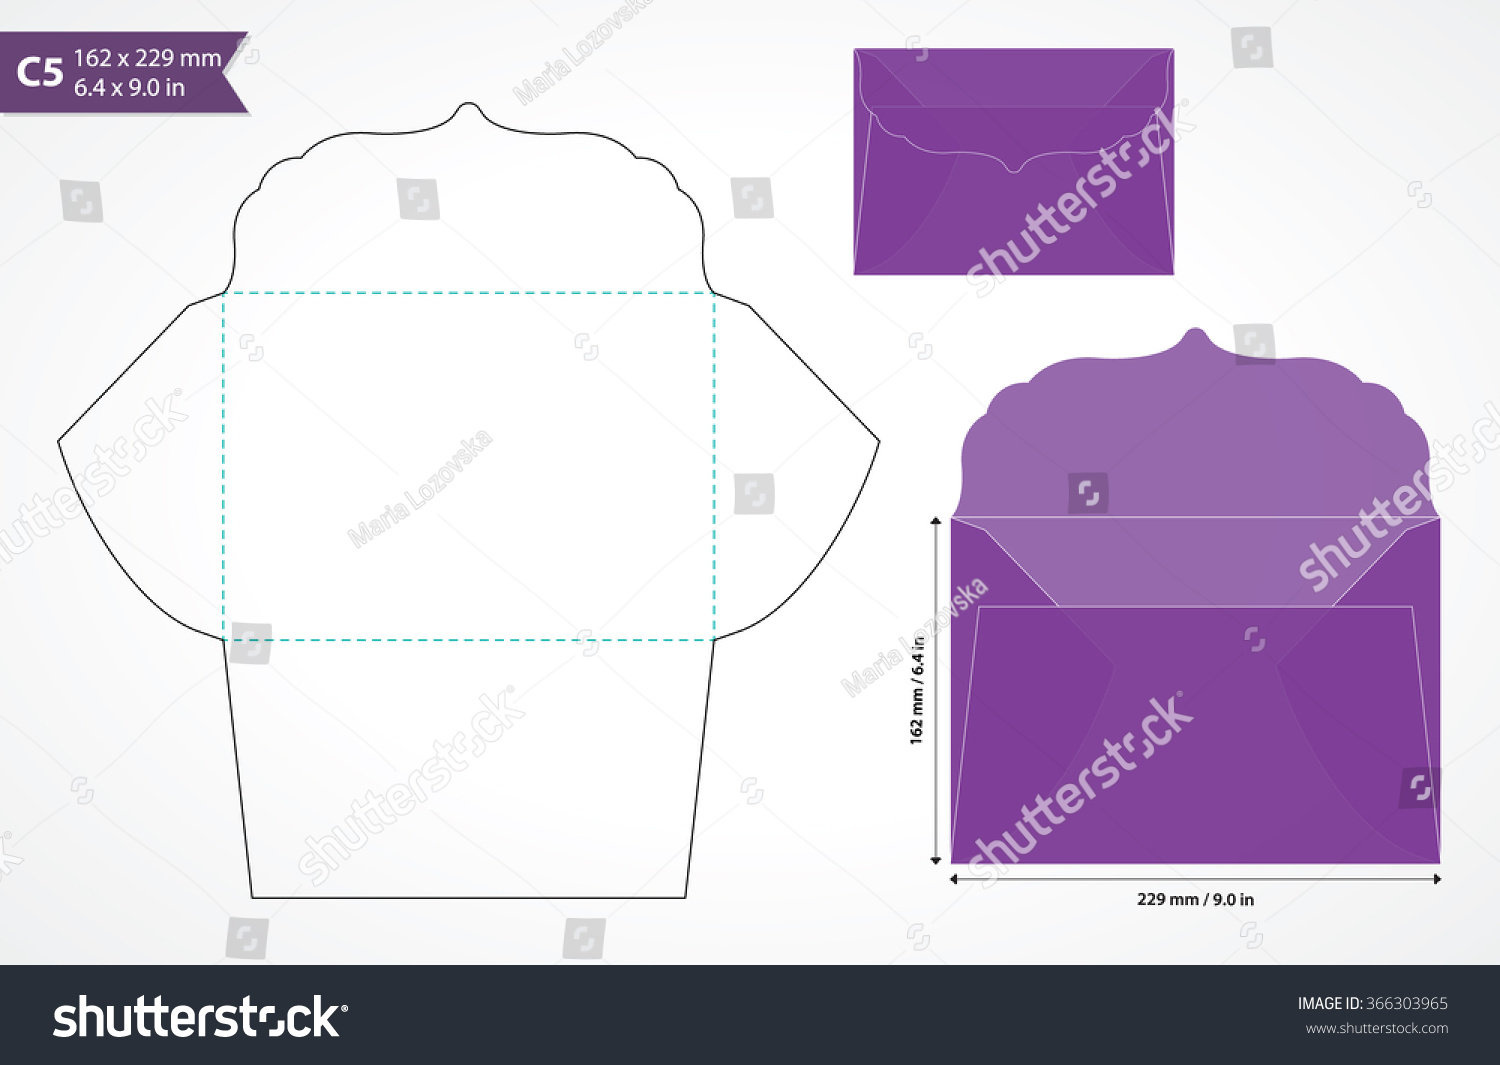 die cut wedding envelope template original stock vector 366303965 shutterstock. Black Bedroom Furniture Sets. Home Design Ideas